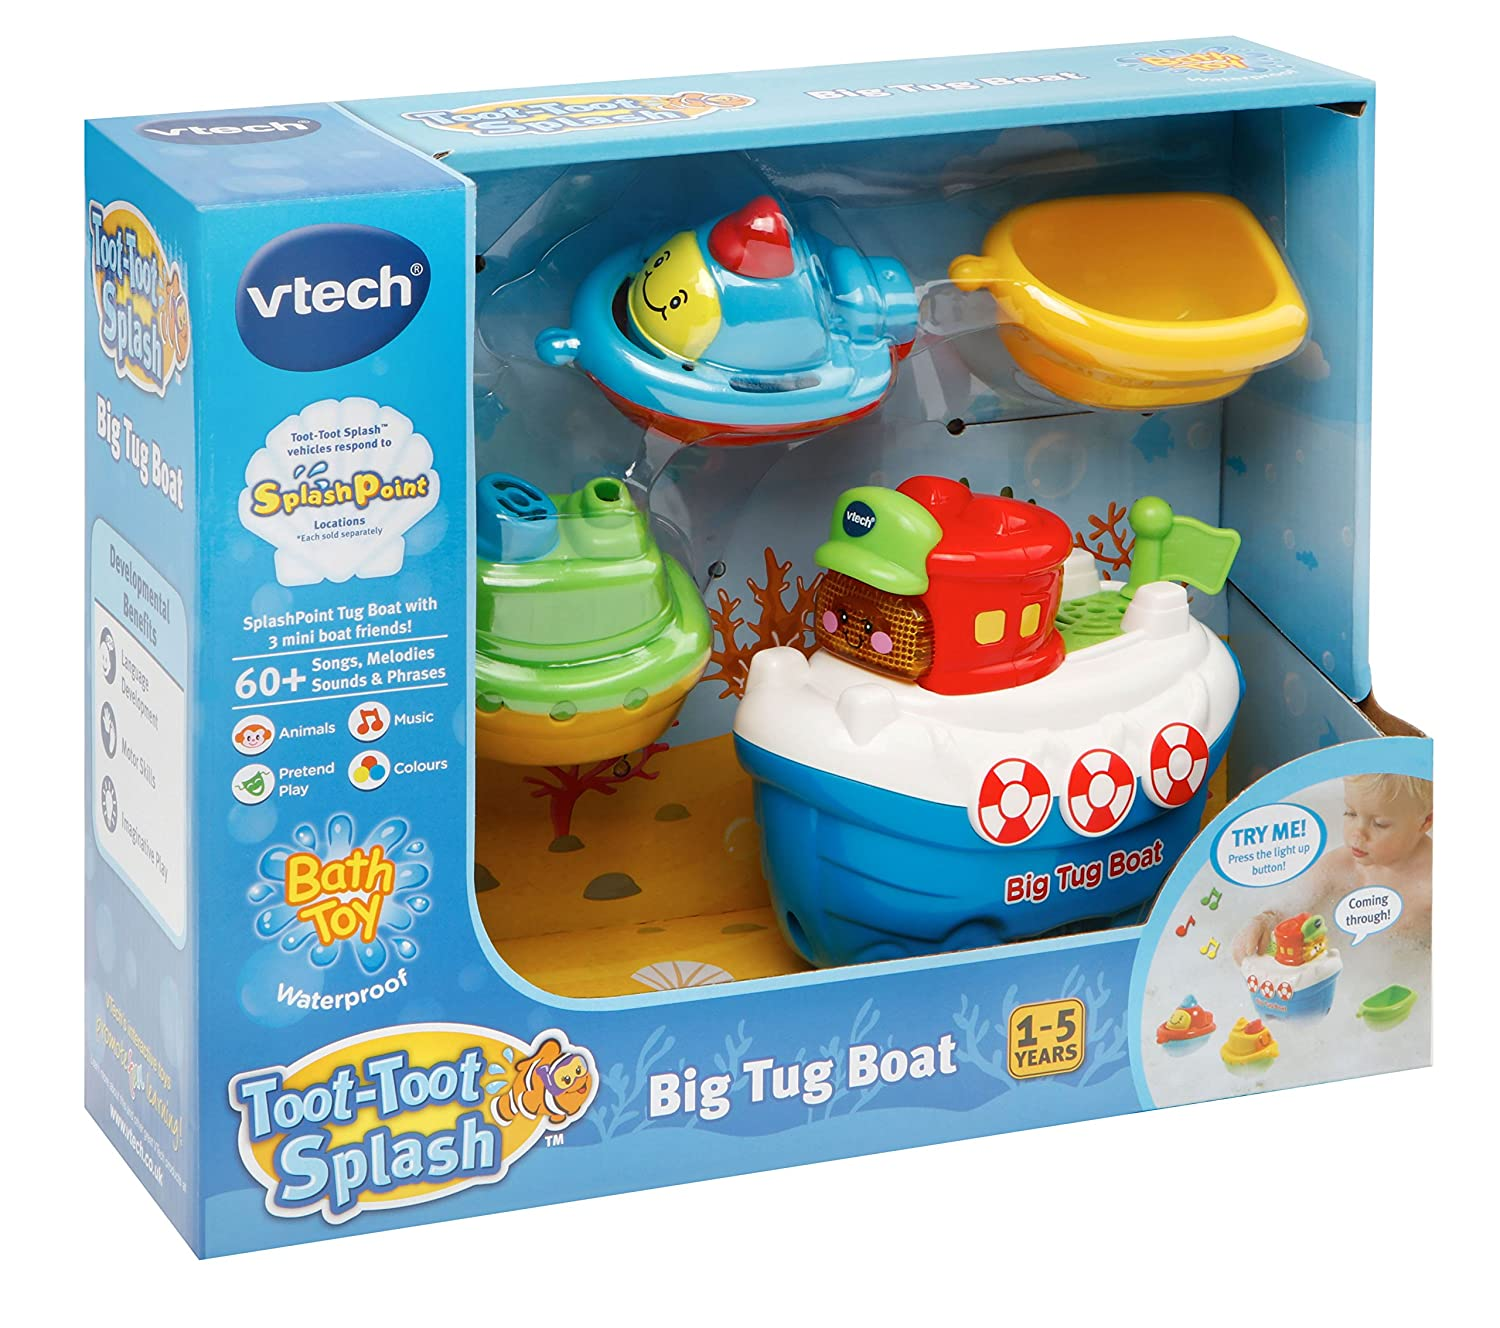 VTech 500303 Toot-Toot Splash Big Tug Boat Toy